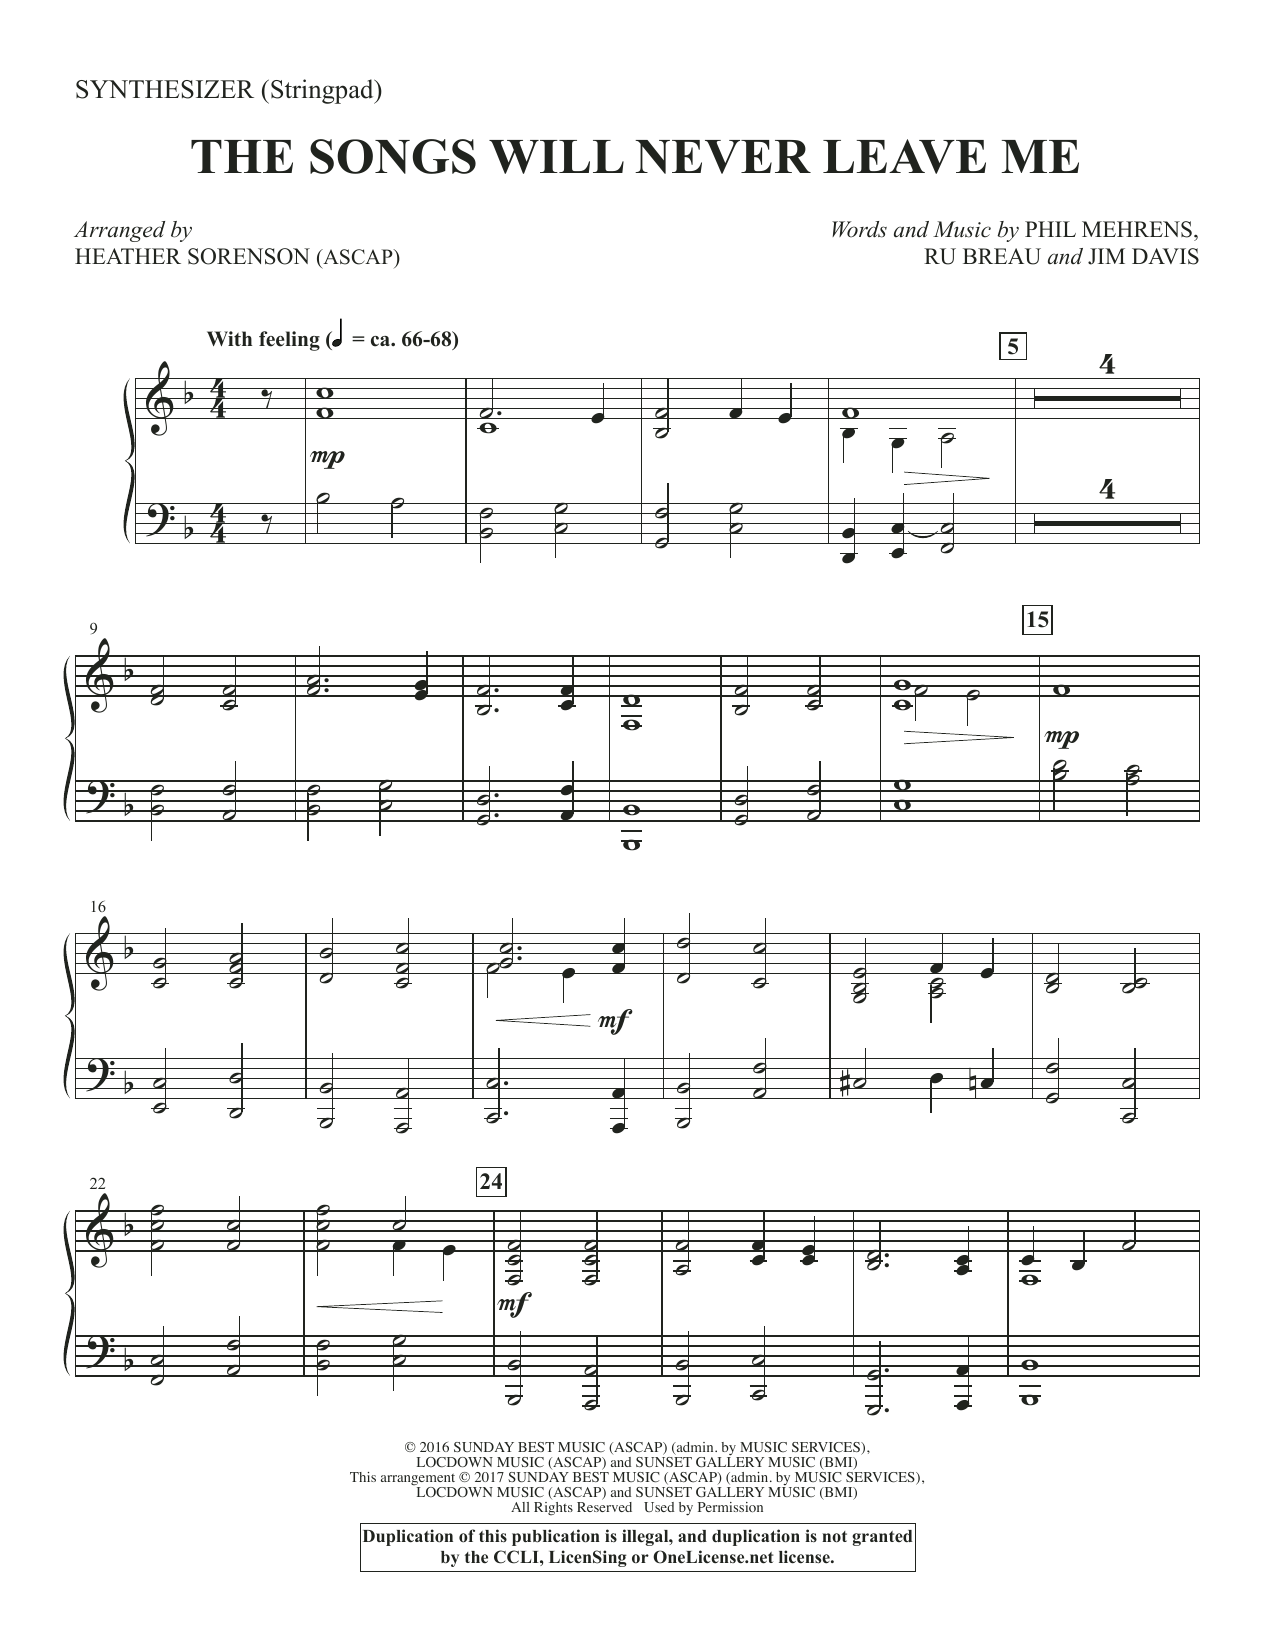 The Songs Will Never Leave Me - Synthesizer Sheet Music